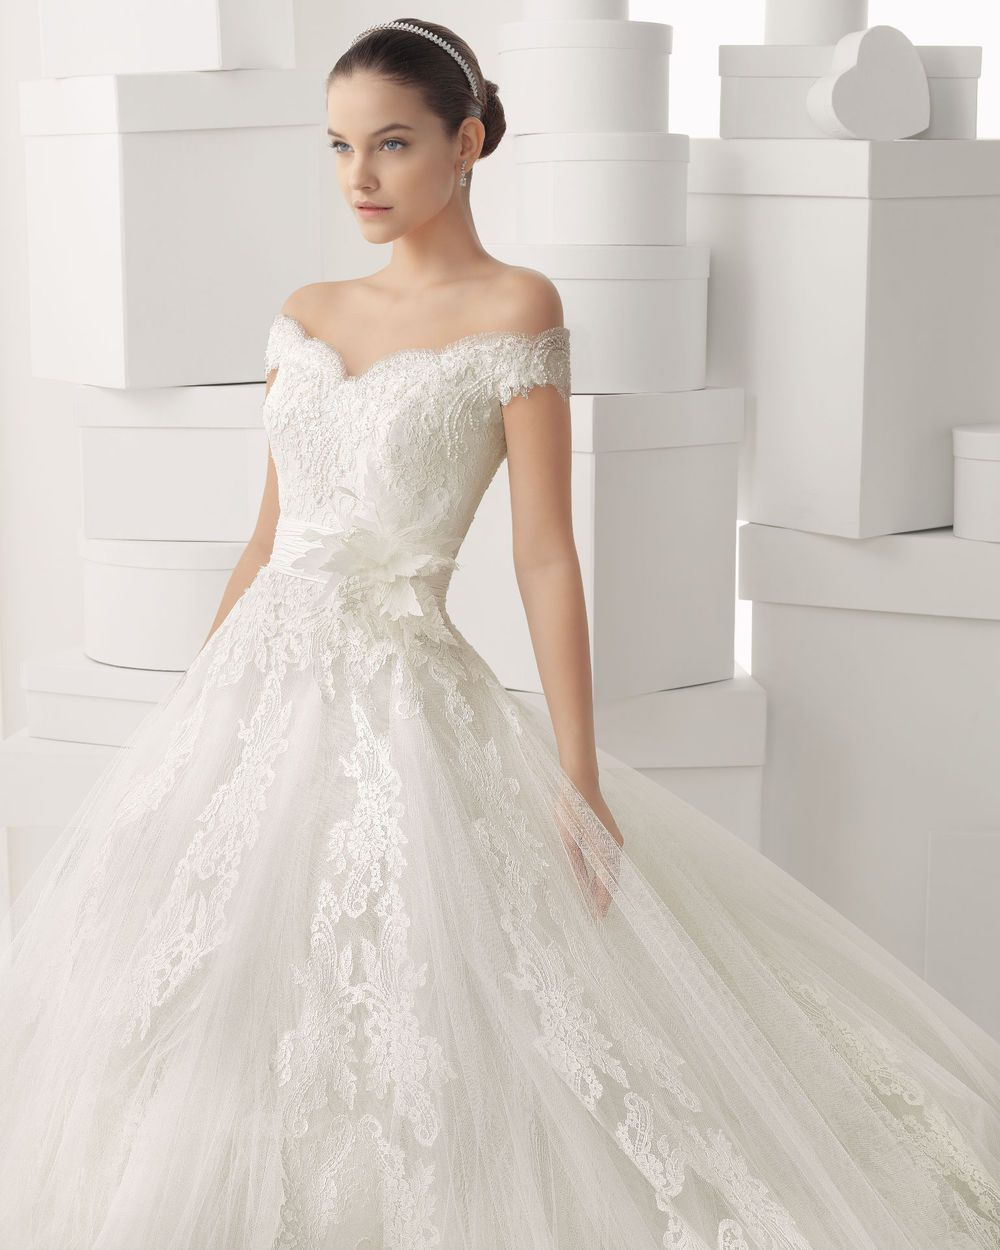 Buy 2014 glamorous off the shoulder ball gown lace wedding for Purchase wedding dress online